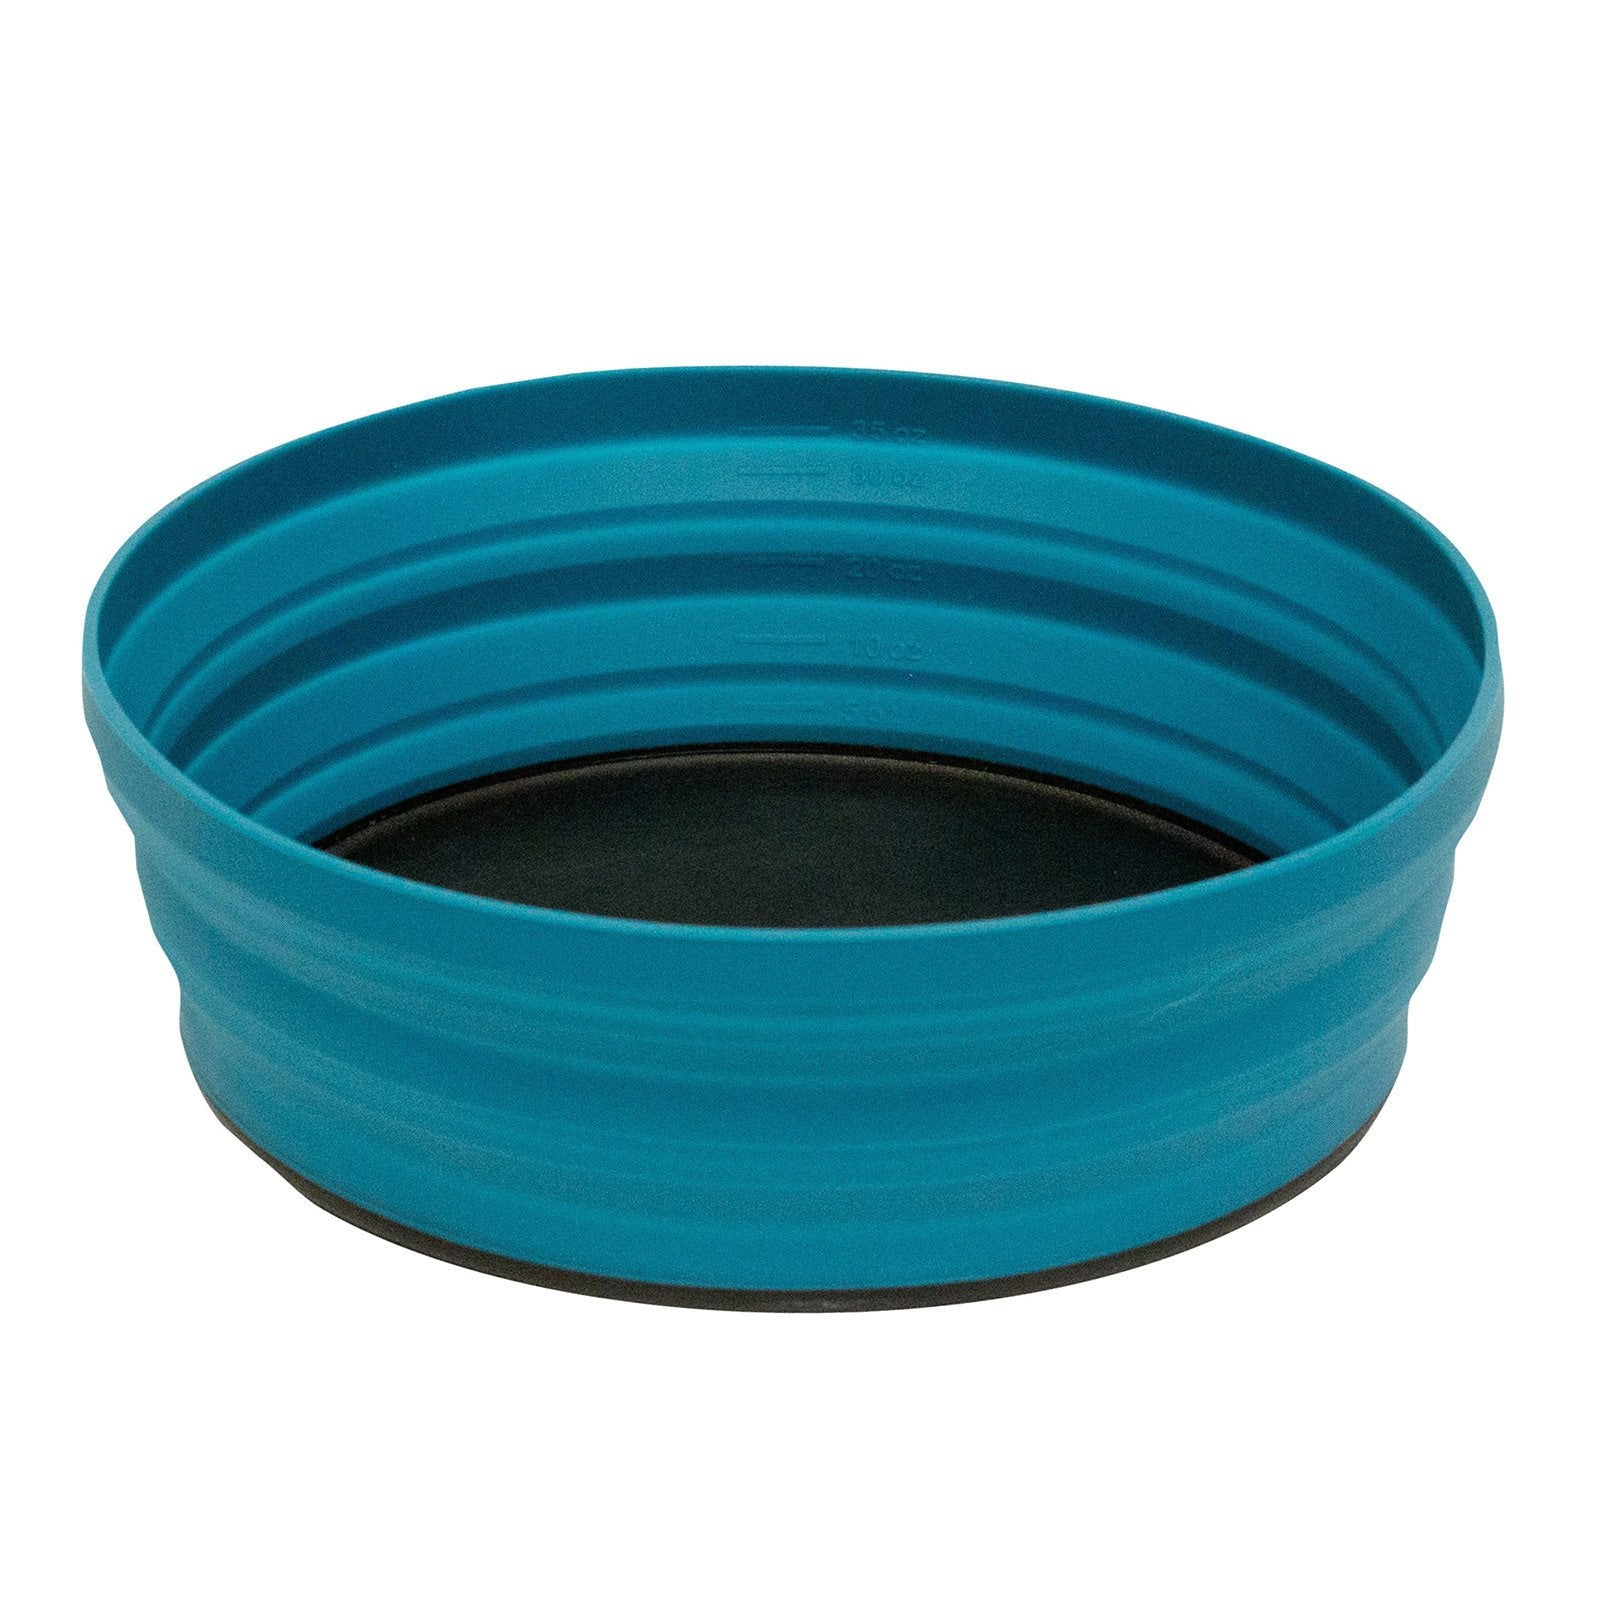 Sea to Summit X-Bowl for camping, in blue